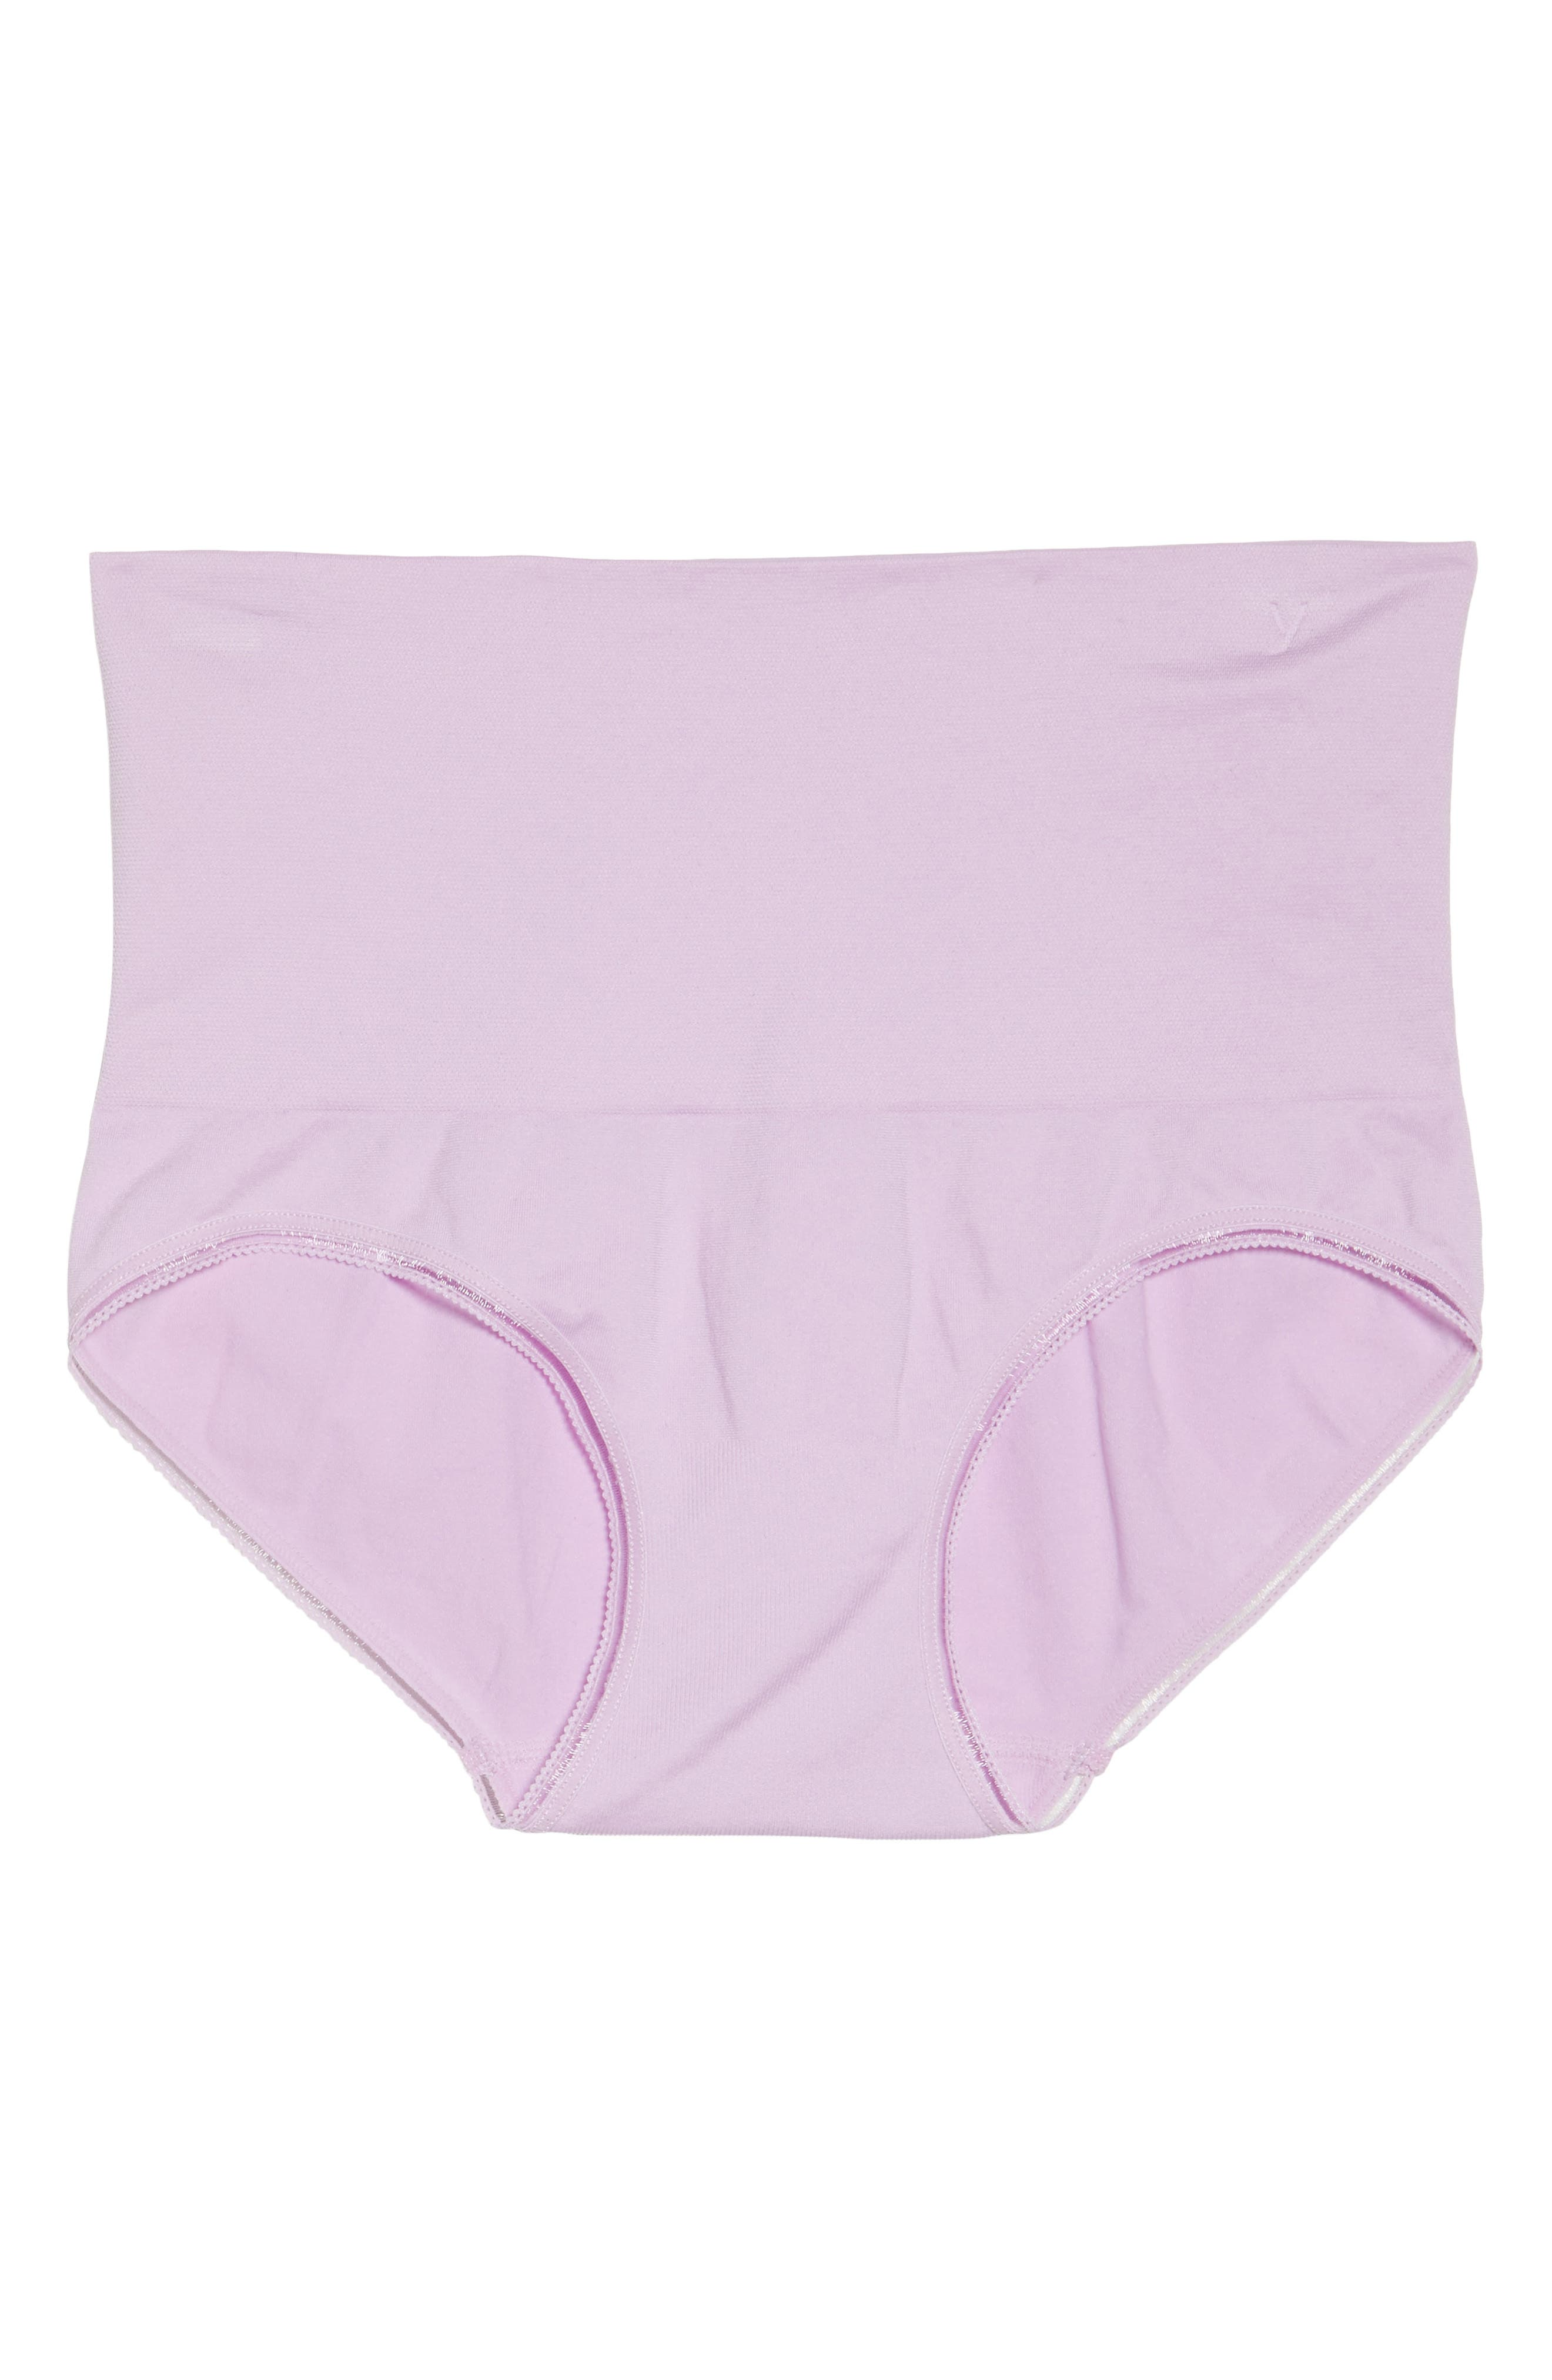 Alternate Image 4  - Yummie Ultralight Seamless Shaping Briefs (2 for $30)